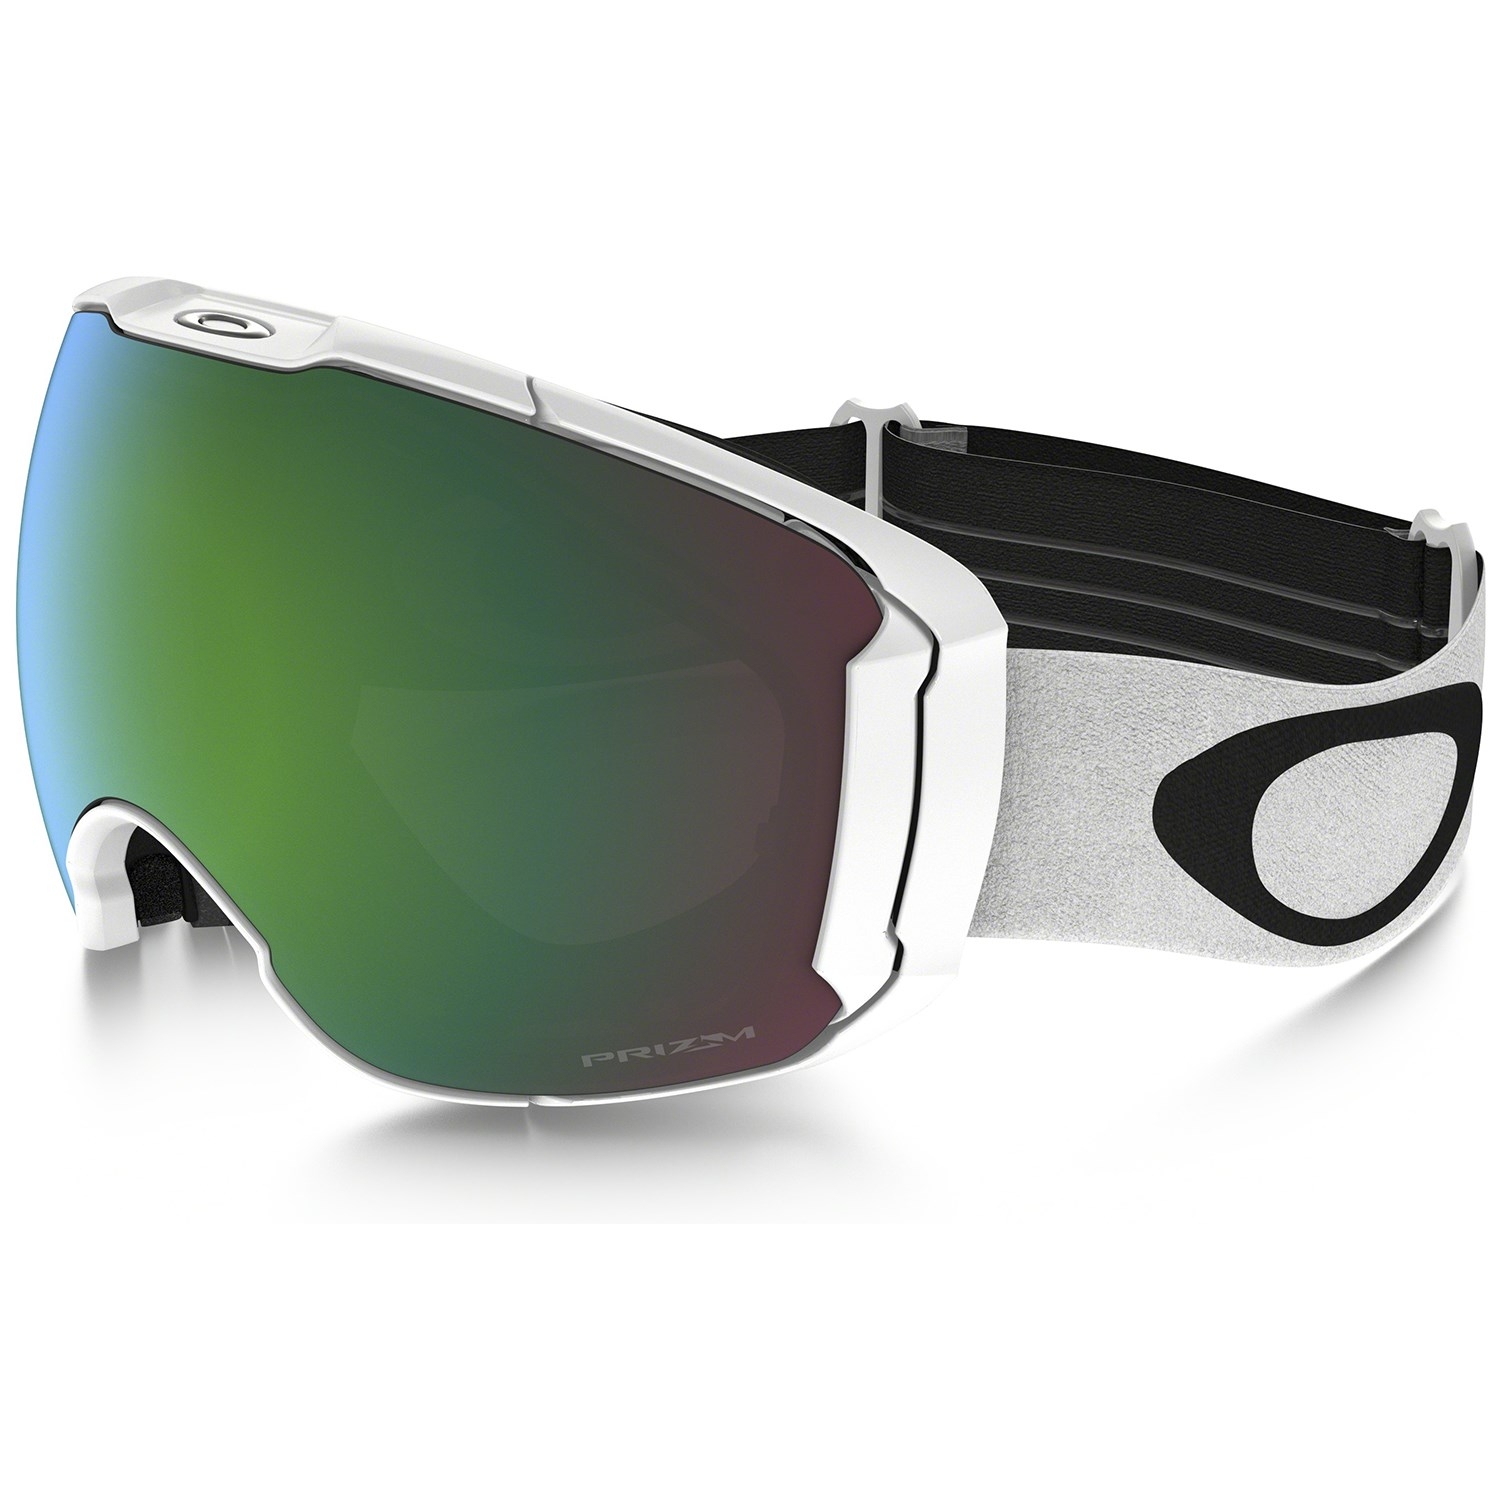 oakley goggles for sale  oakley airbrake xl asian fit goggles $220.00 $164.99 sale